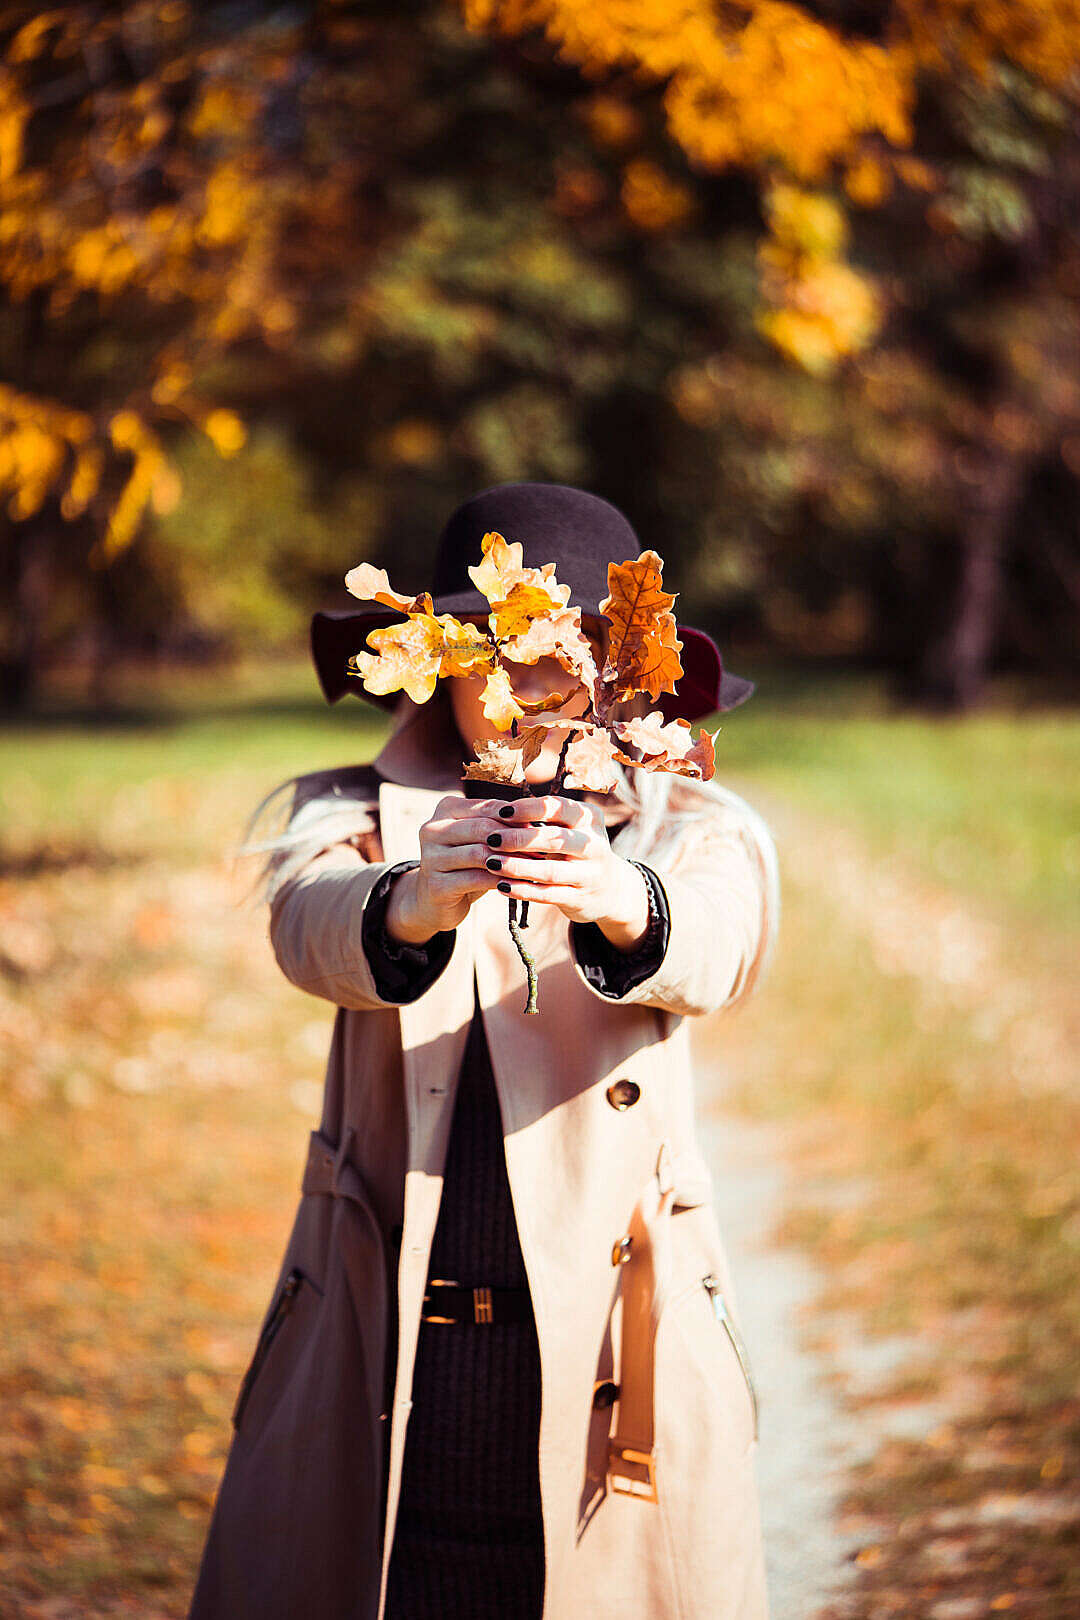 Download Woman Covering Her Face with Autumn Leaves FREE Stock Photo